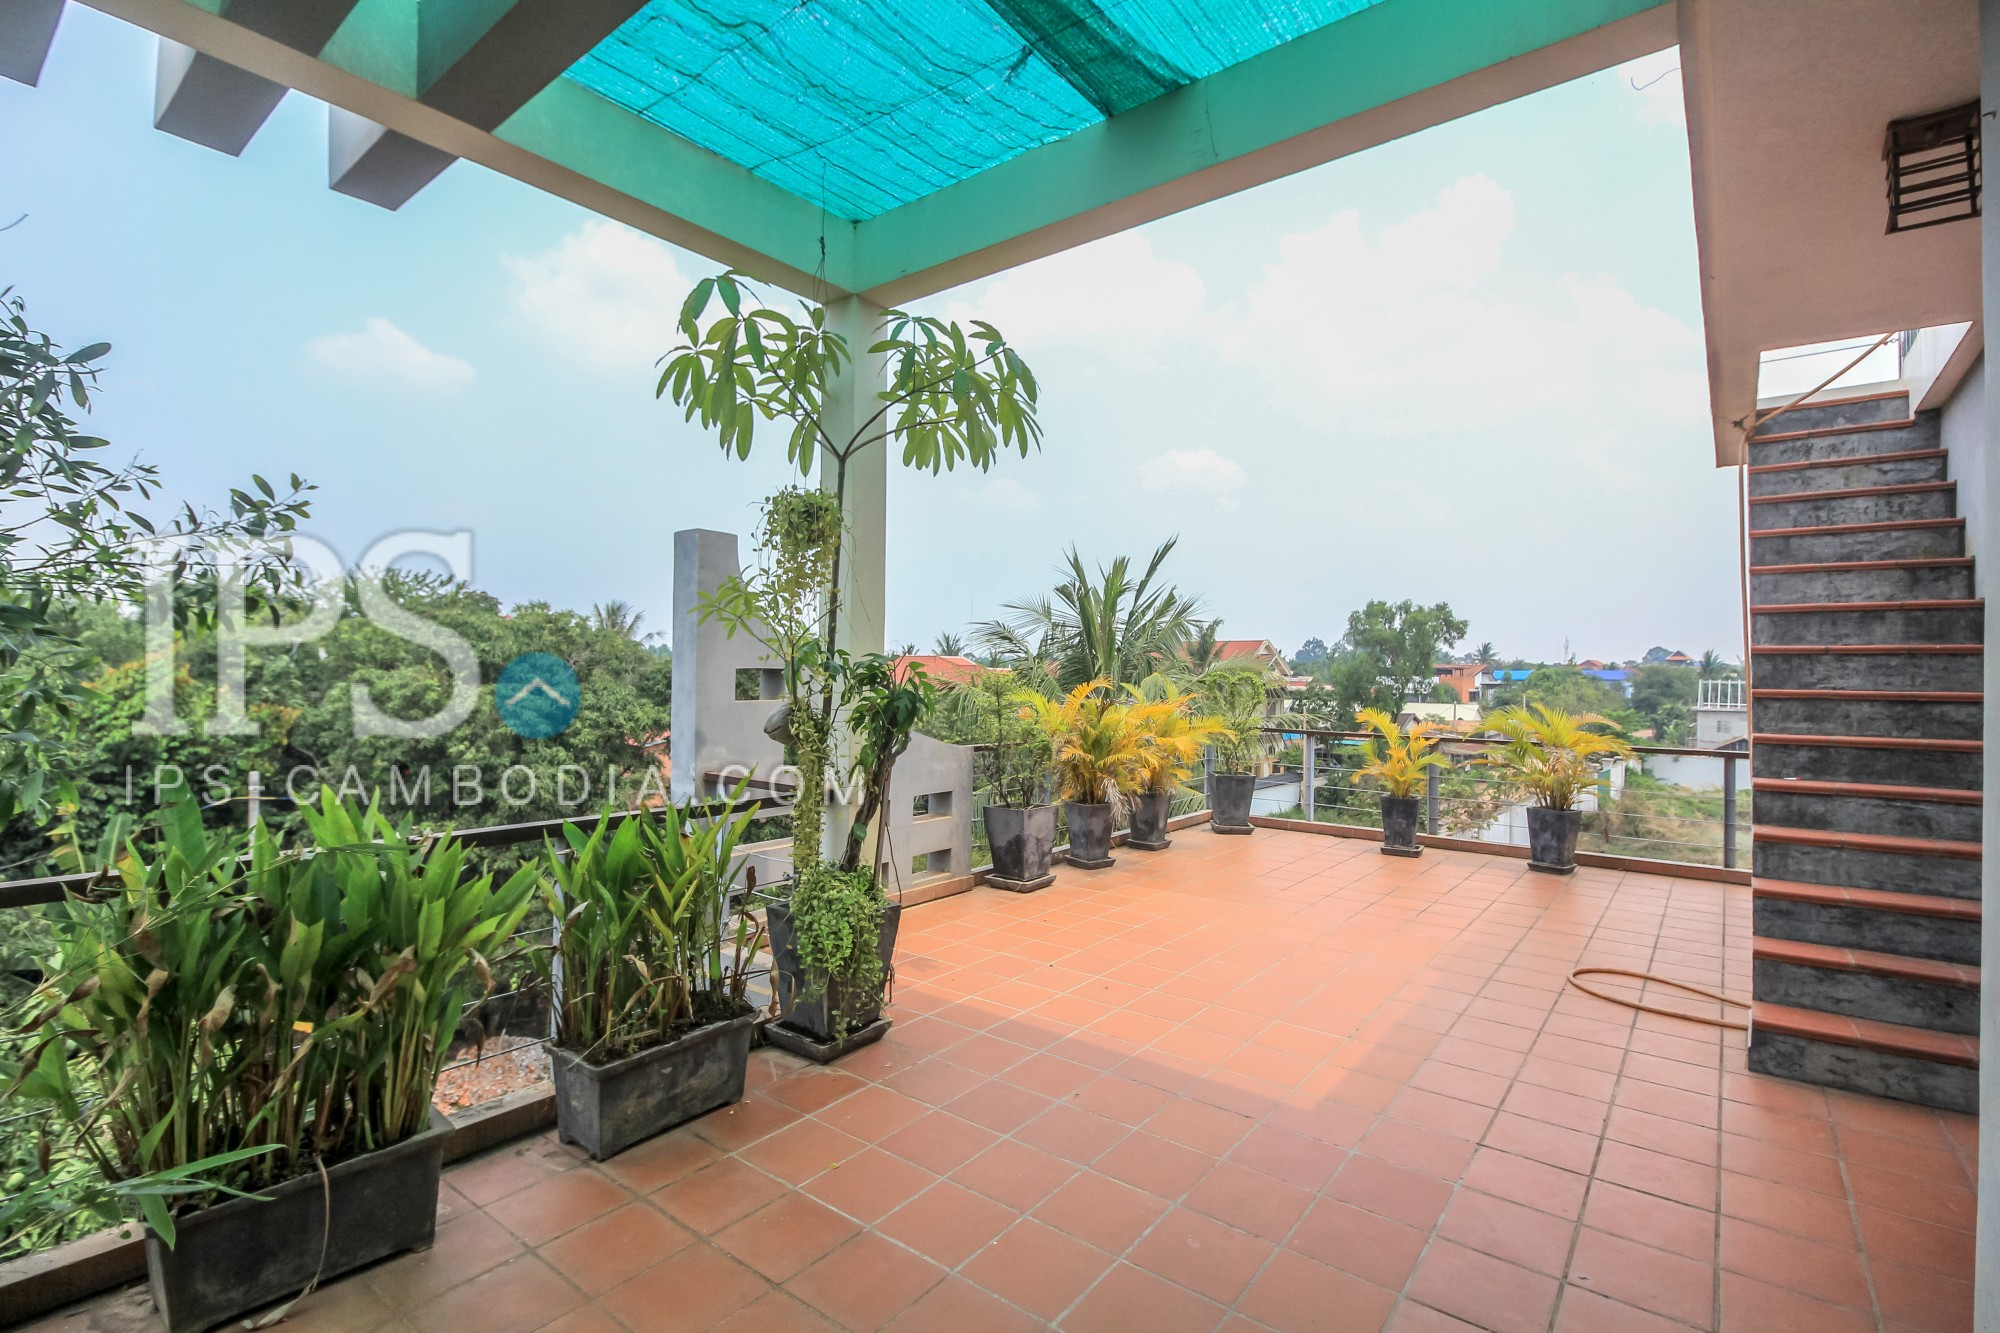 2 Bedroom Apartment For Rent - Siem Reap